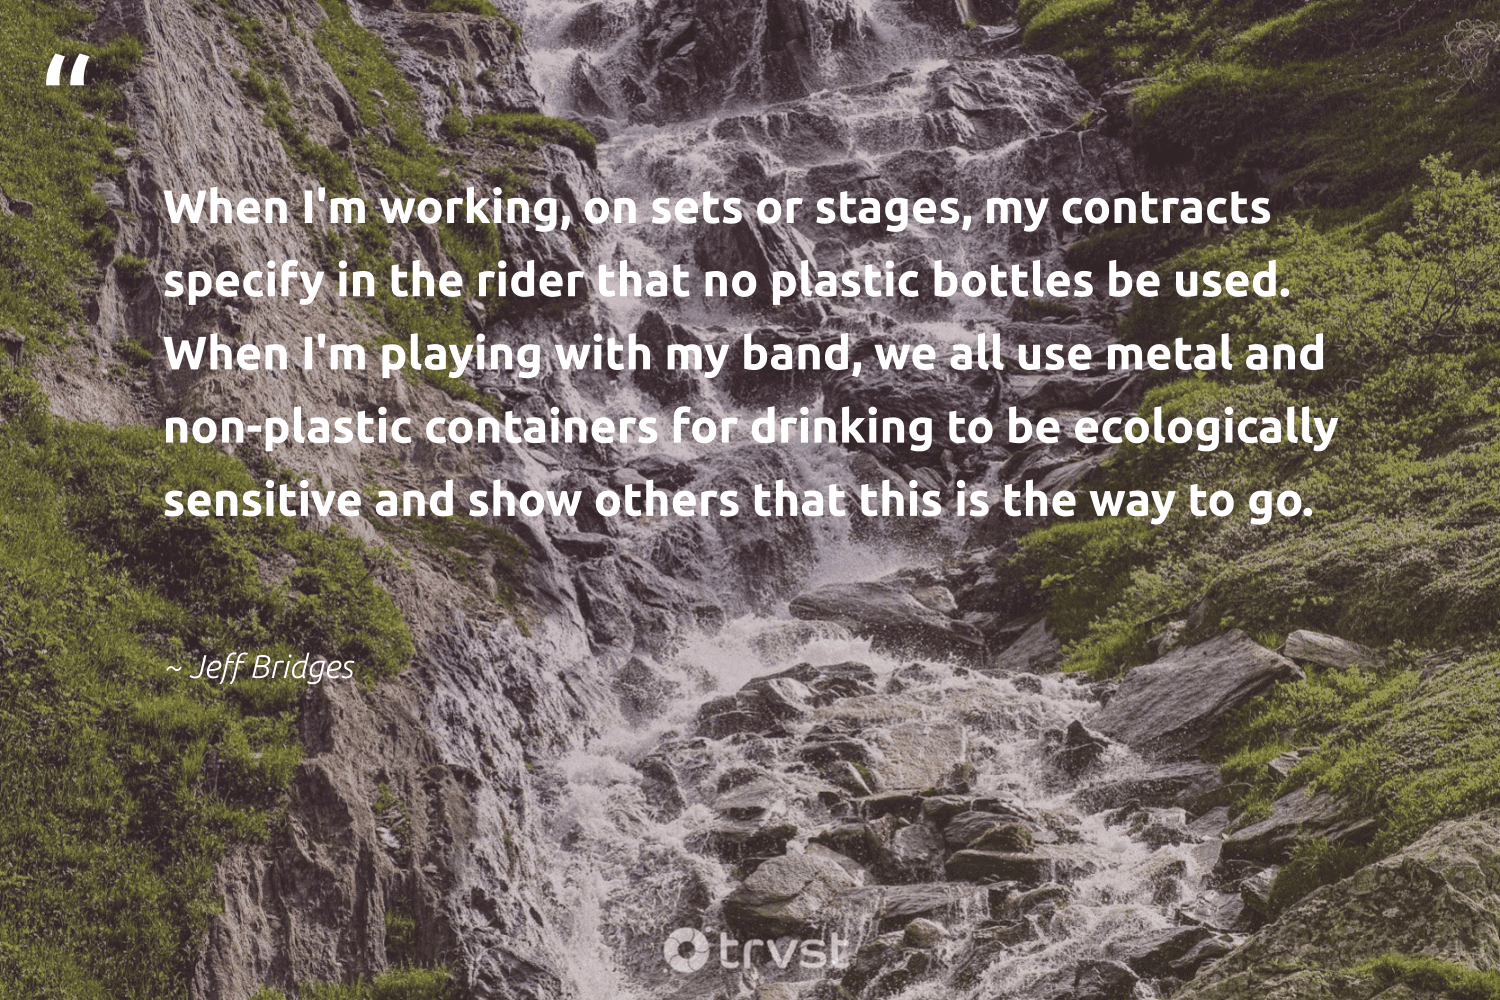 """""""When I'm working, on sets or stages, my contracts specify in the rider that no plastic bottles be used. When I'm playing with my band, we all use metal and non-plastic containers for drinking to be ecologically sensitive and show others that this is the way to go.""""  - Jeff Bridges #trvst #quotes #plasticwaste #plastic #noplastic #plasticfree #saynotoplastic #planetearthfirst #environment #thinkgreen #plasticsucks #plasticpollution"""